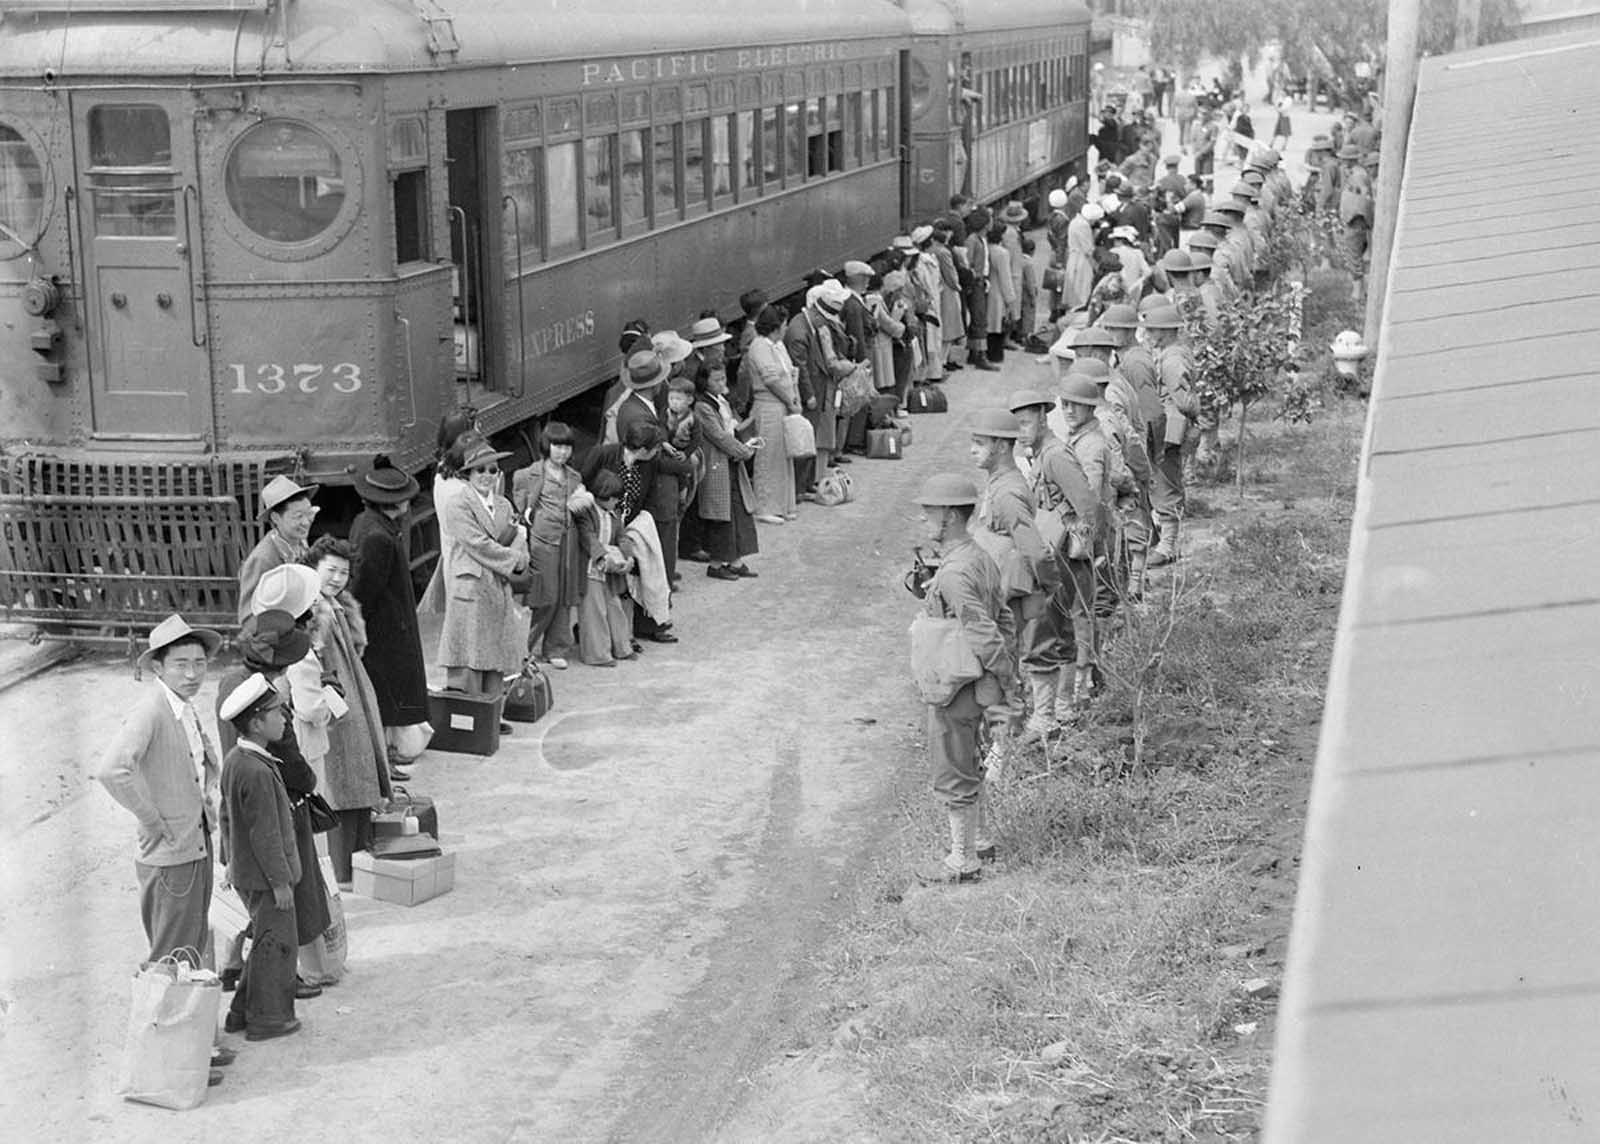 Persons of Japanese ancestry from San Pedro, California, arrive at the Santa Anita Assembly center in Arcadia, California, in 1942. Evacuees lived at this center at the Santa Anita race track before being moved inland to other relocation centers.